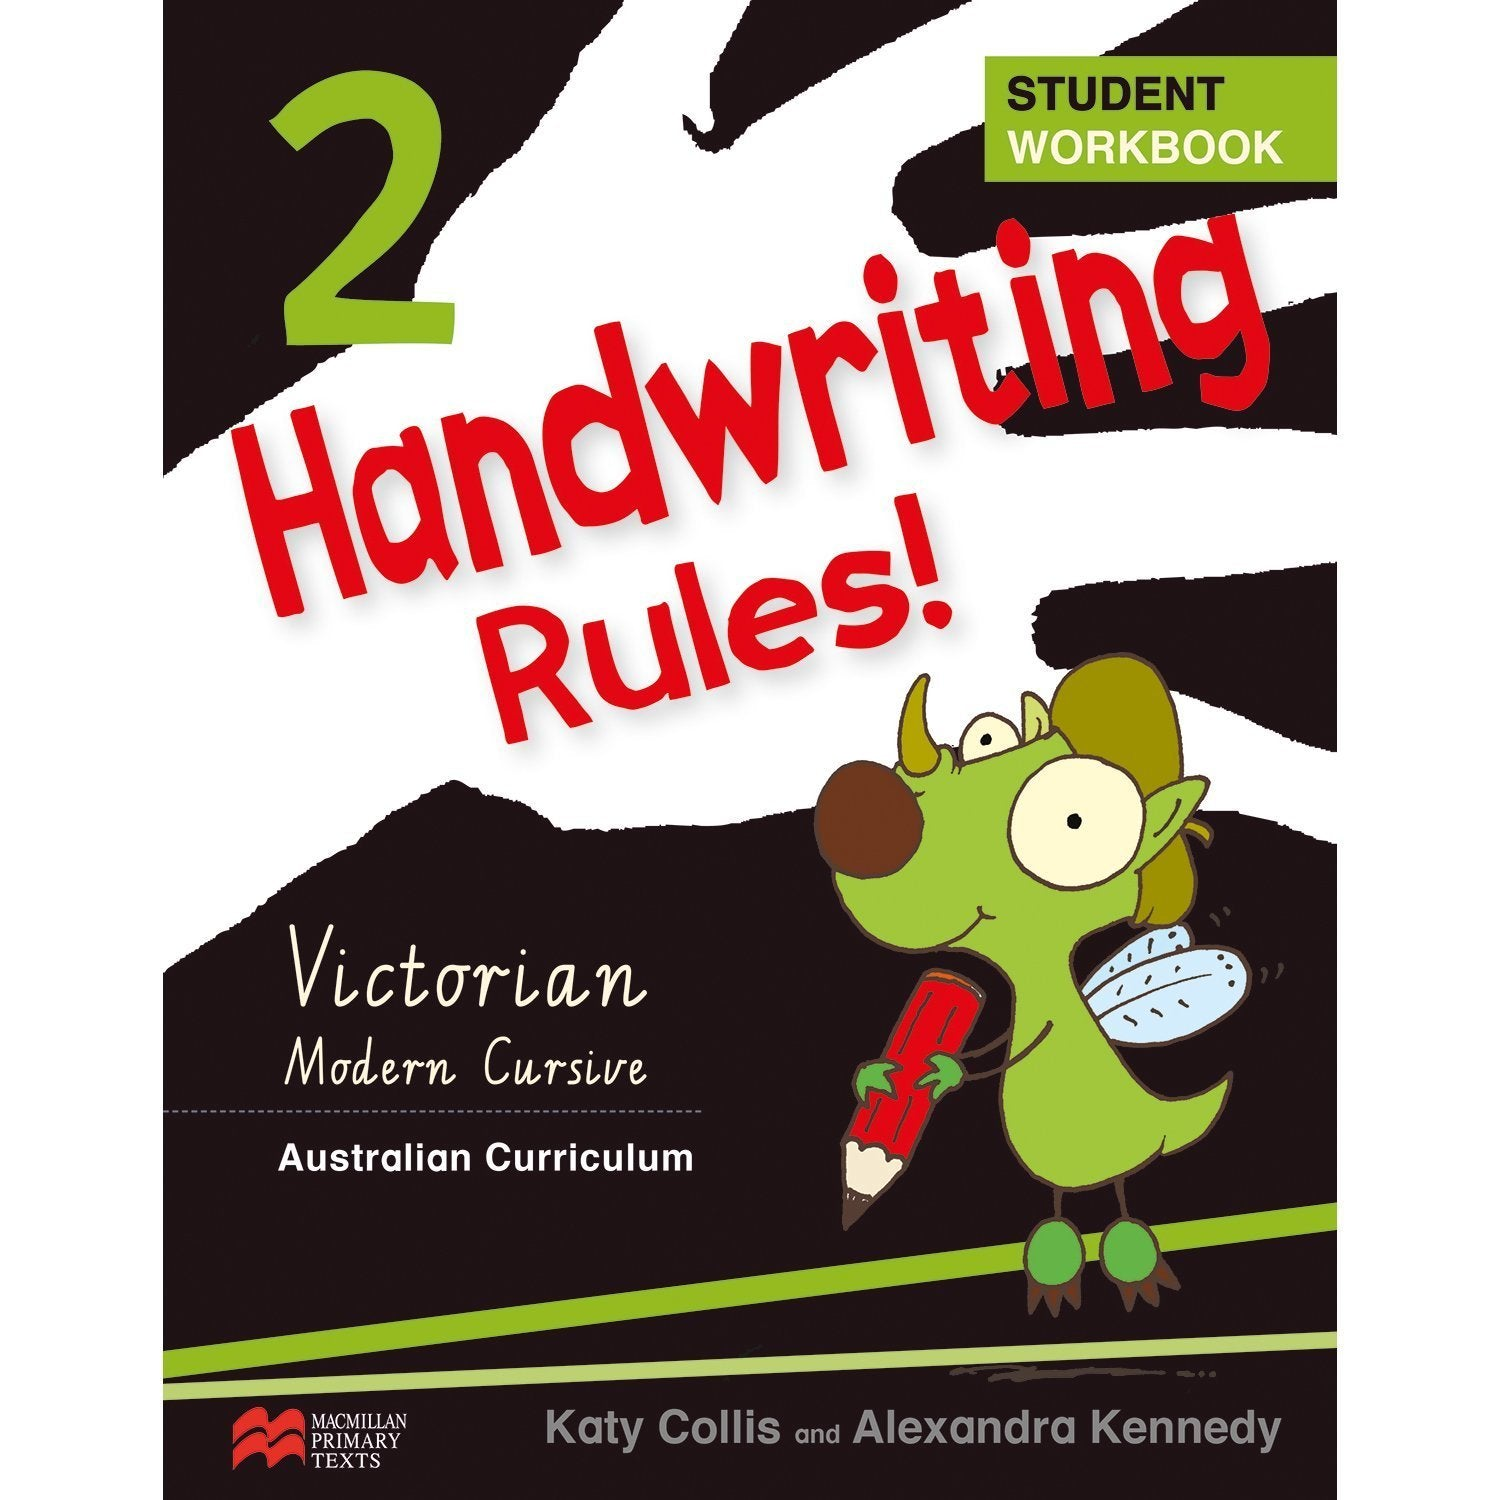 Handwriting Rules! VIC 2